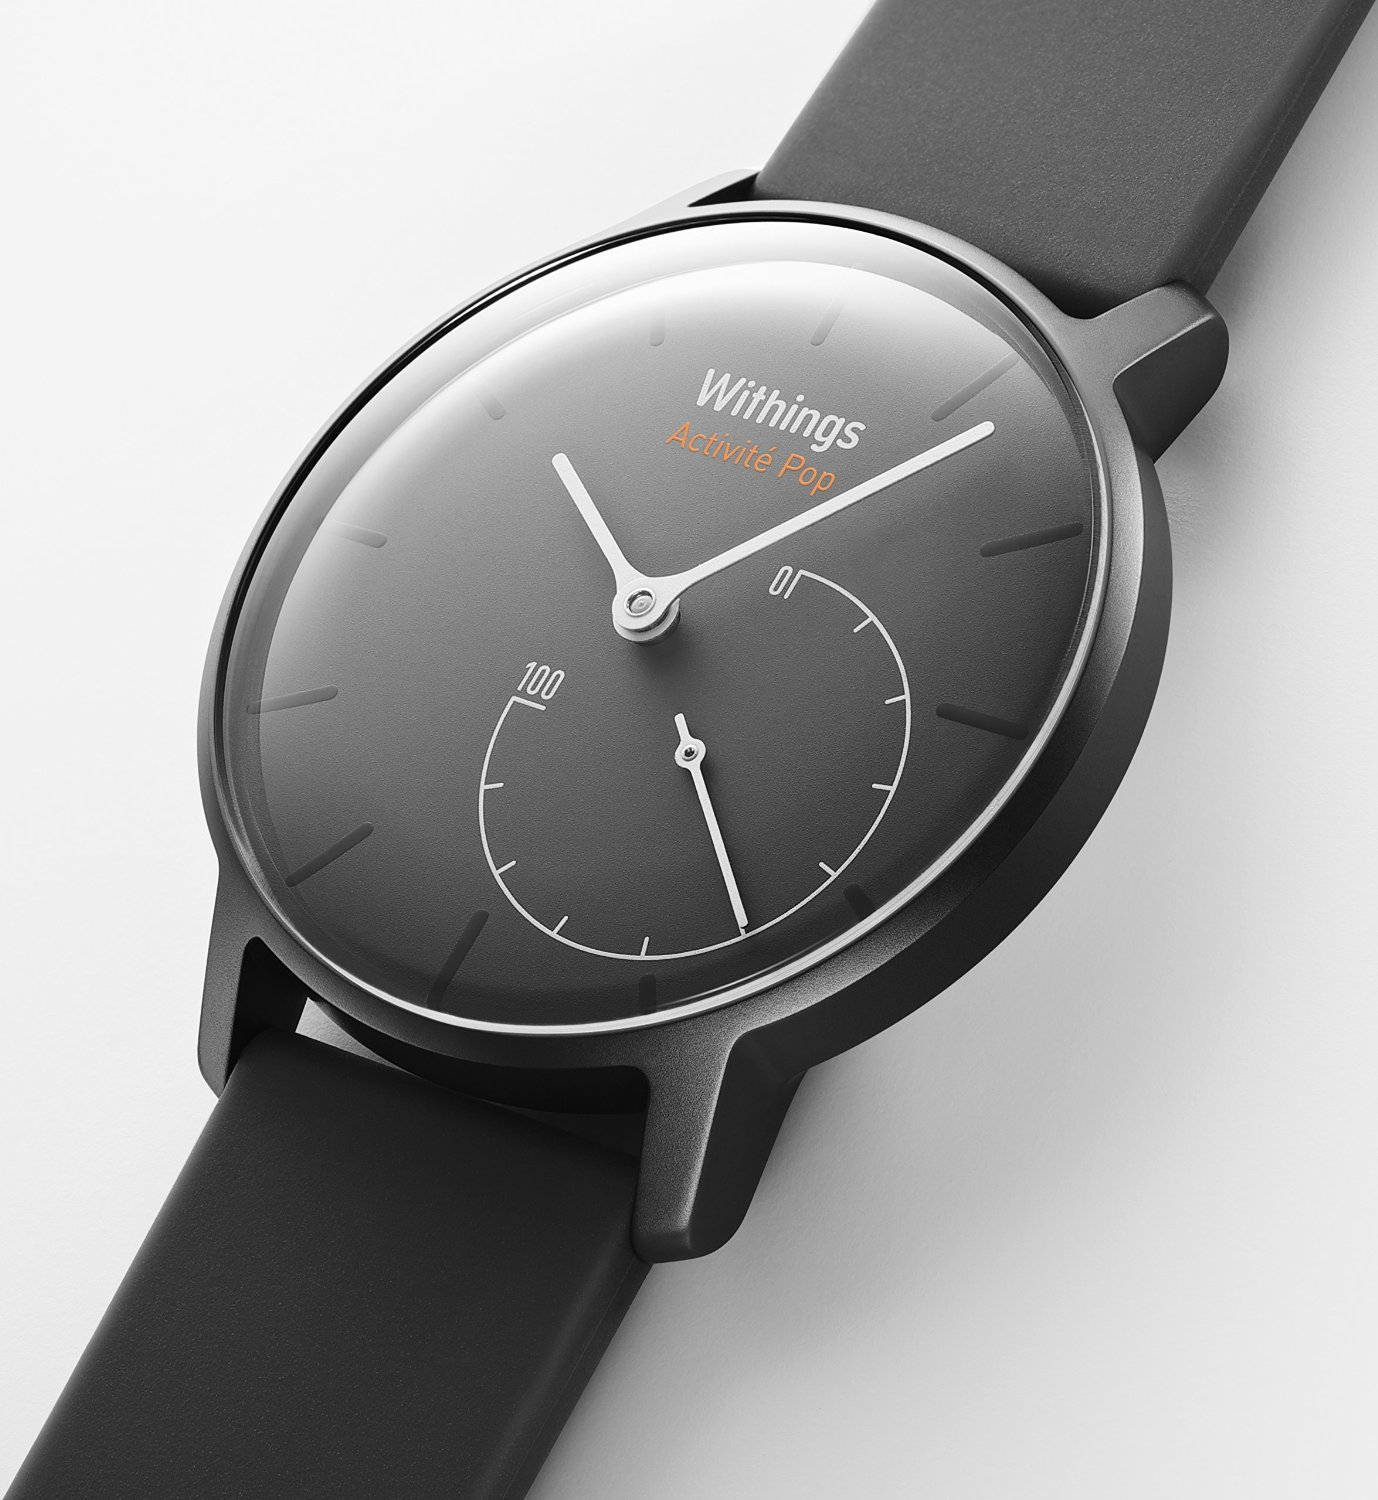 Withings_004